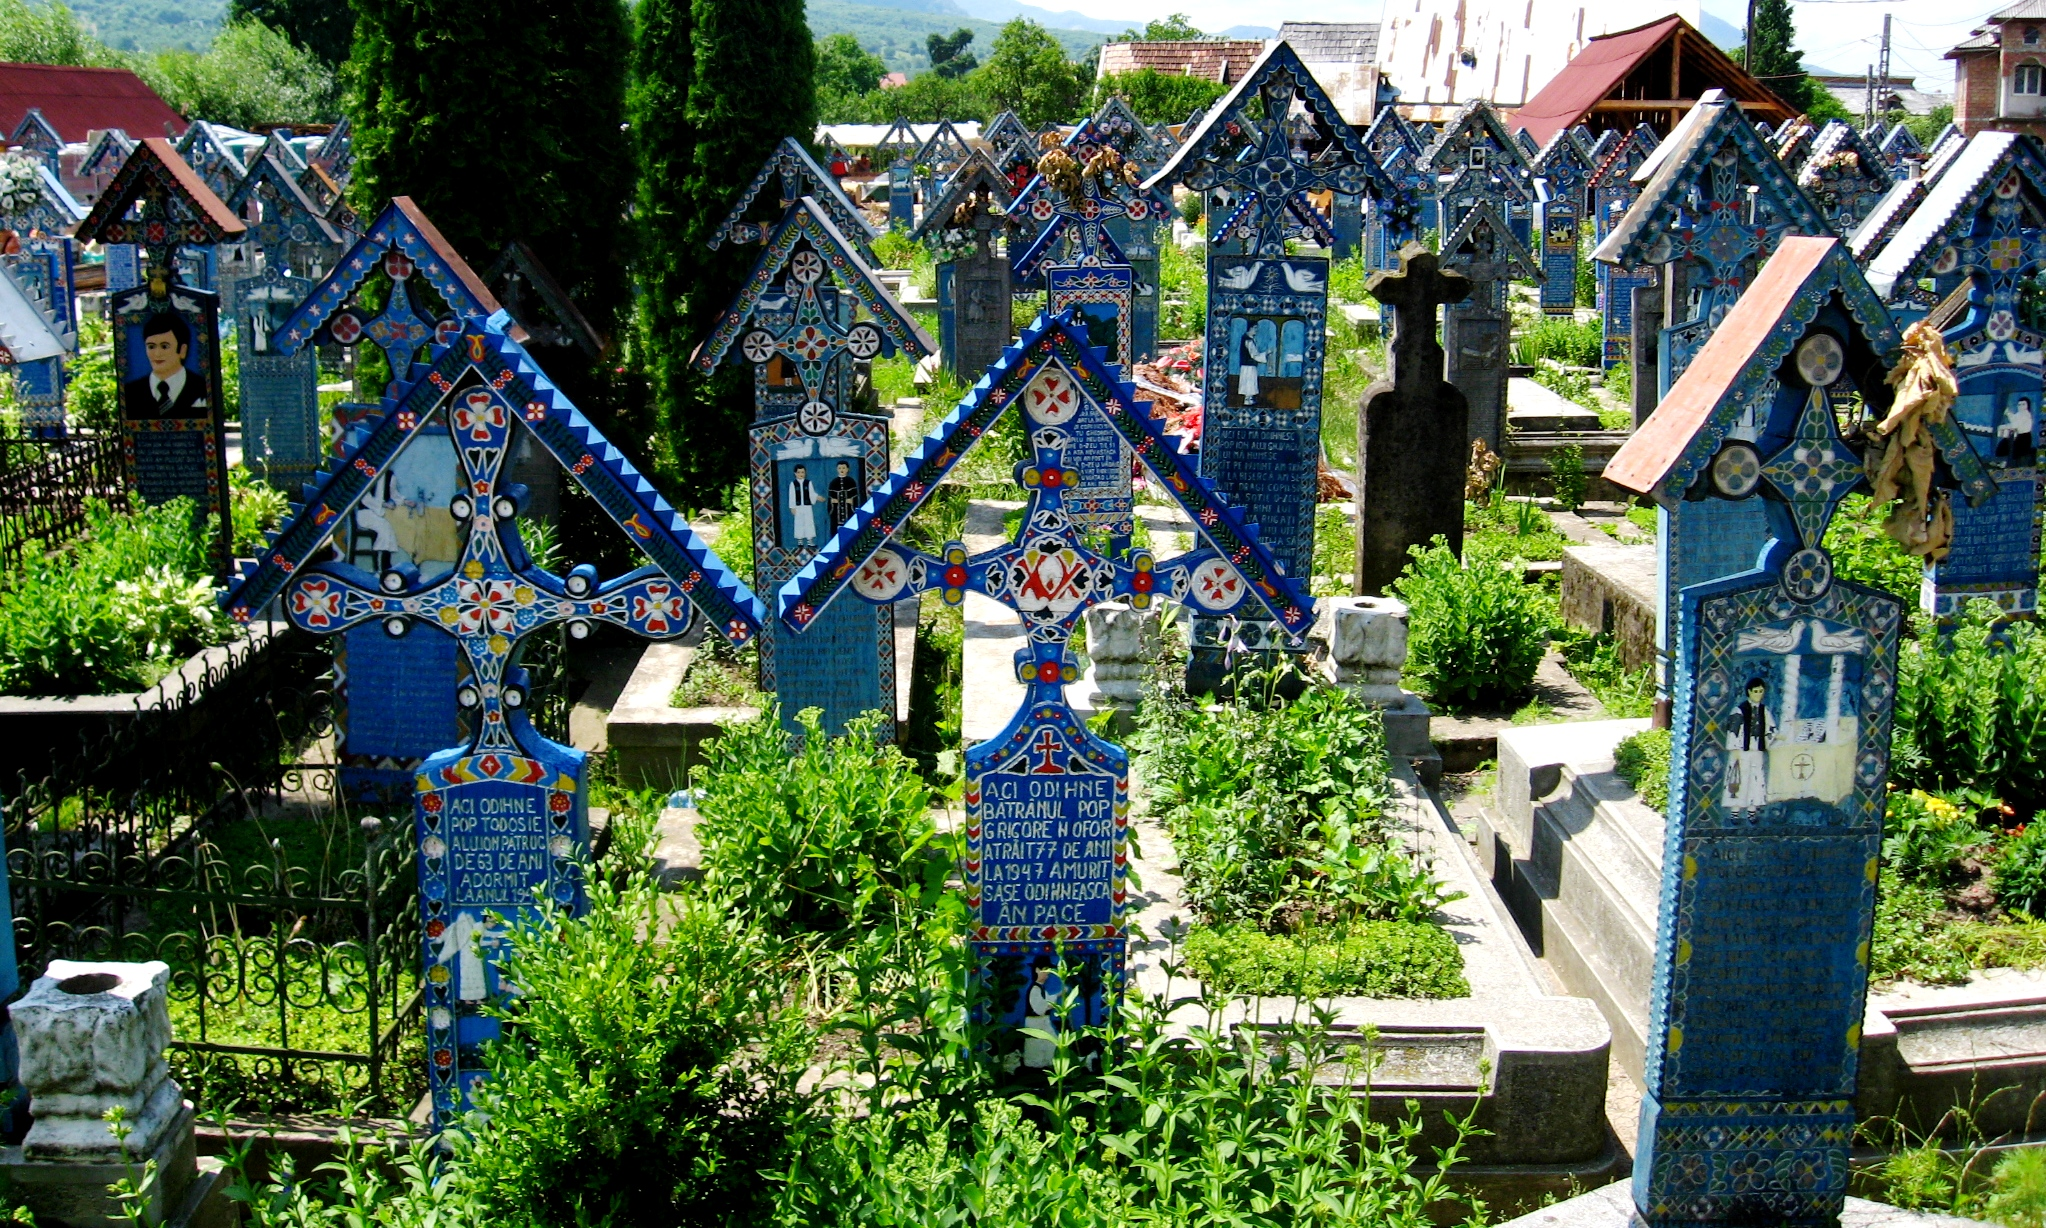 the-merry-cemetery-is-famous-for-its-colou-secret-world